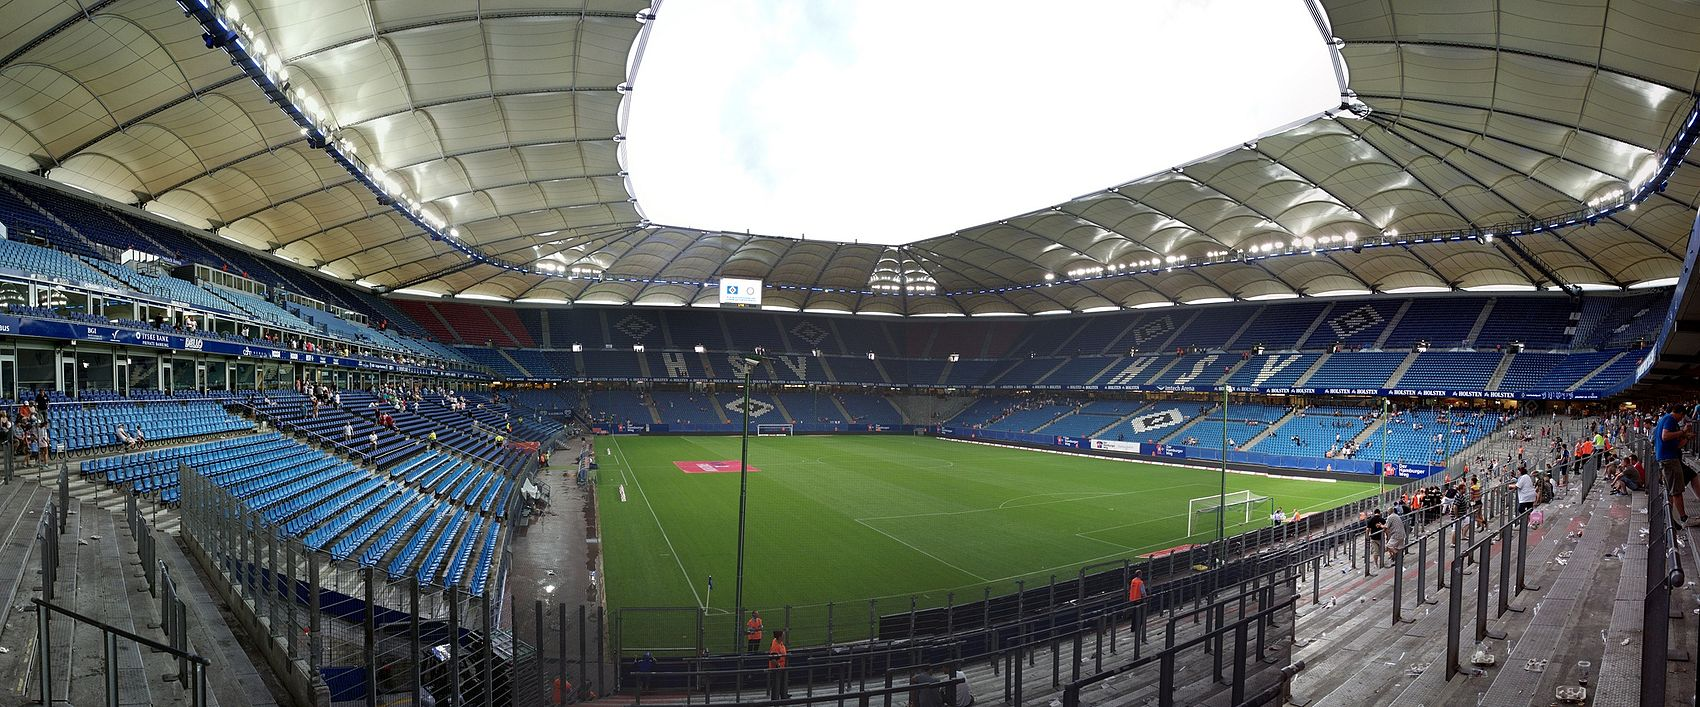 https://upload.wikimedia.org/wikipedia/commons/thumb/7/79/Volksparkstadion_Panorama.jpg/1700px-Volksparkstadion_Panorama.jpg